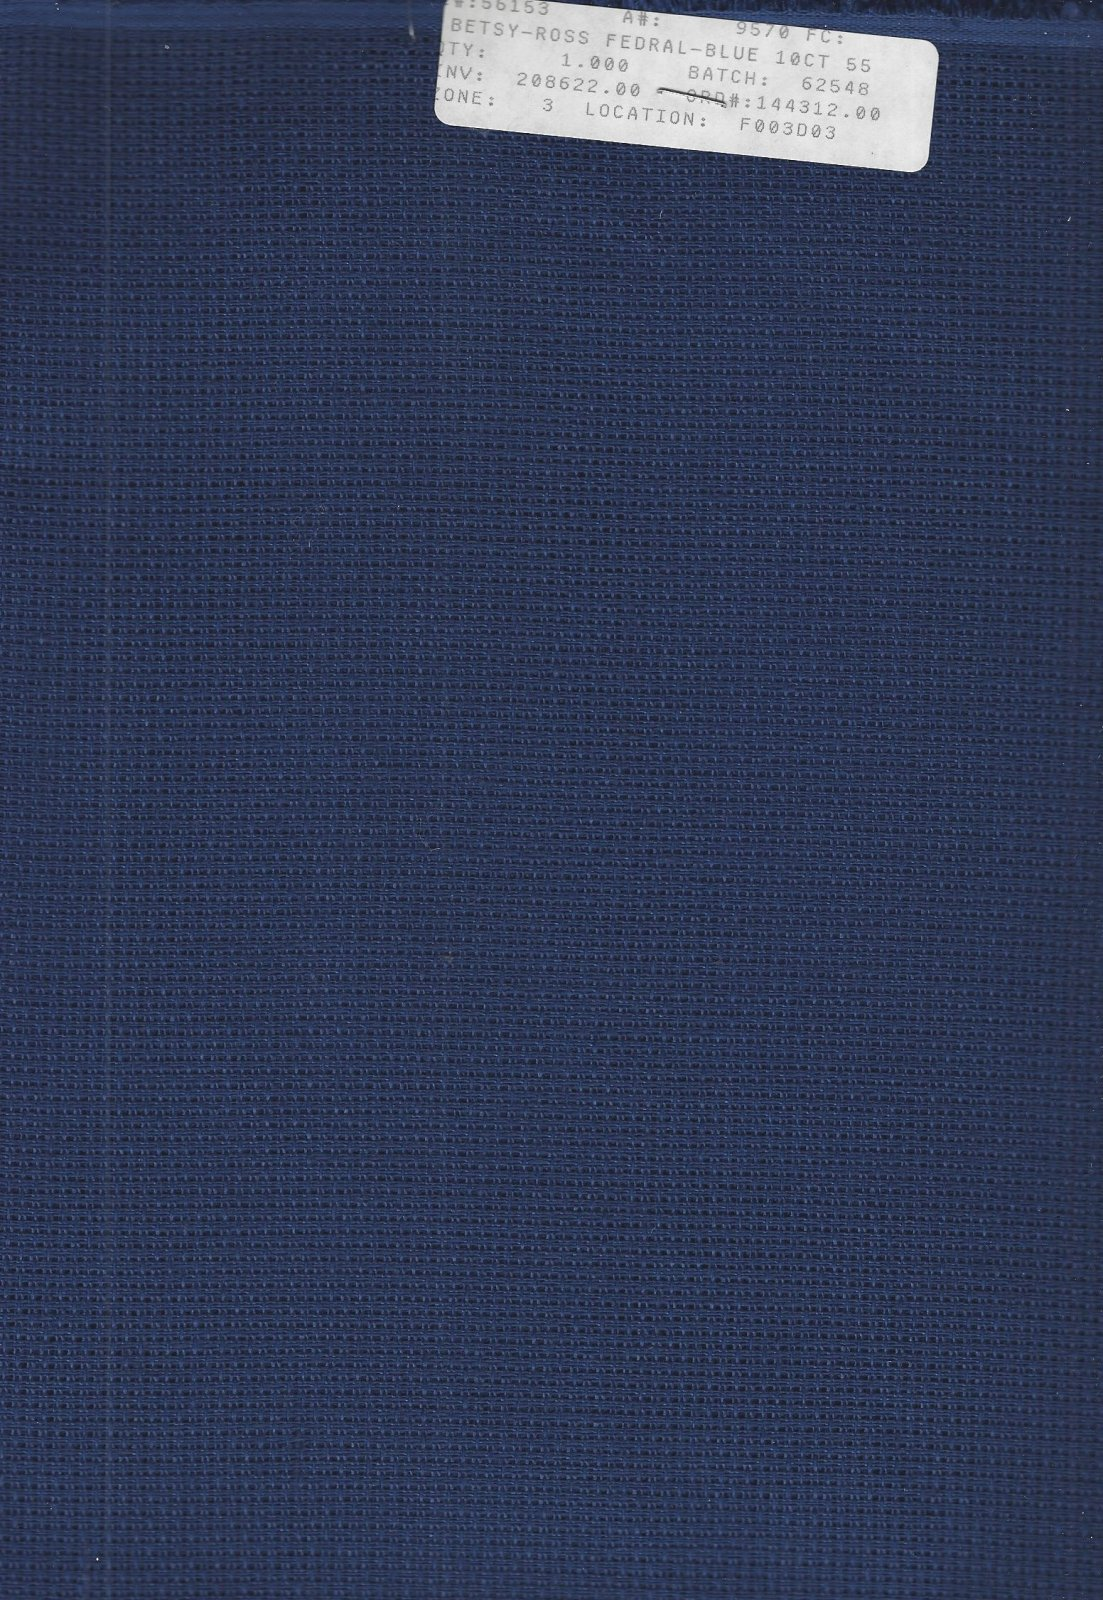 Betsy Ross 10ct Federal Blue (discontinued color)